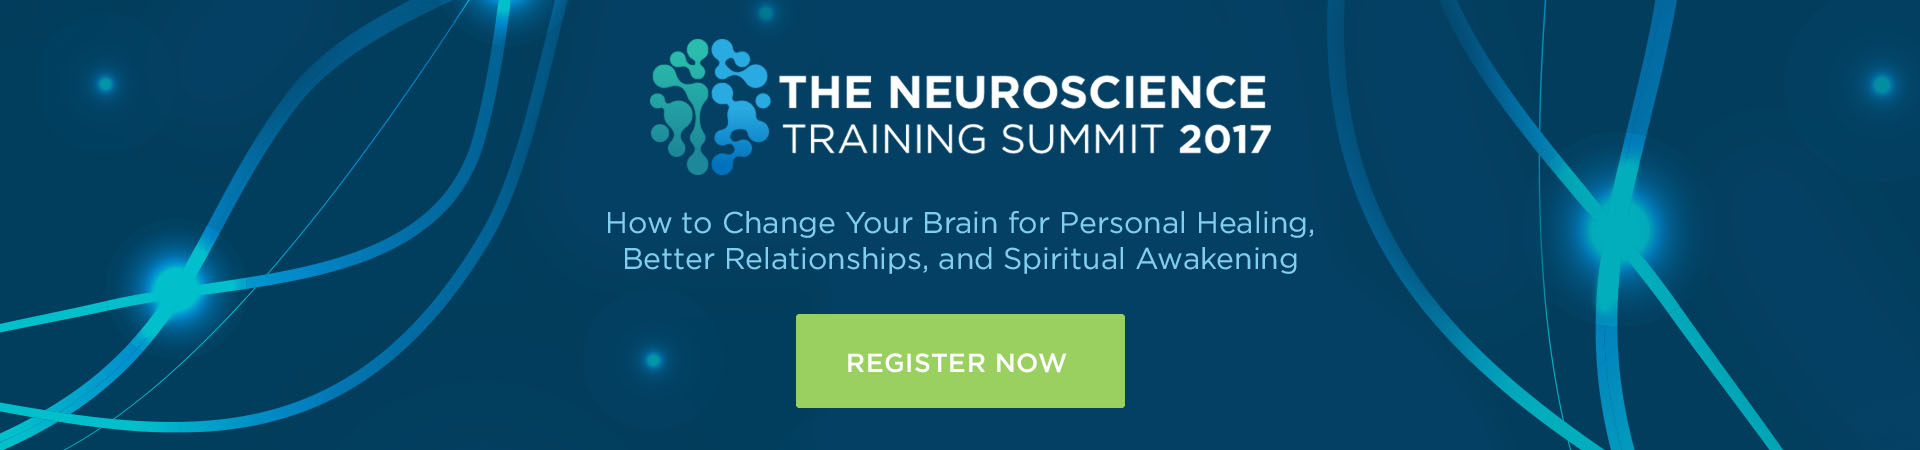 Neuroscience Training Summit 2017